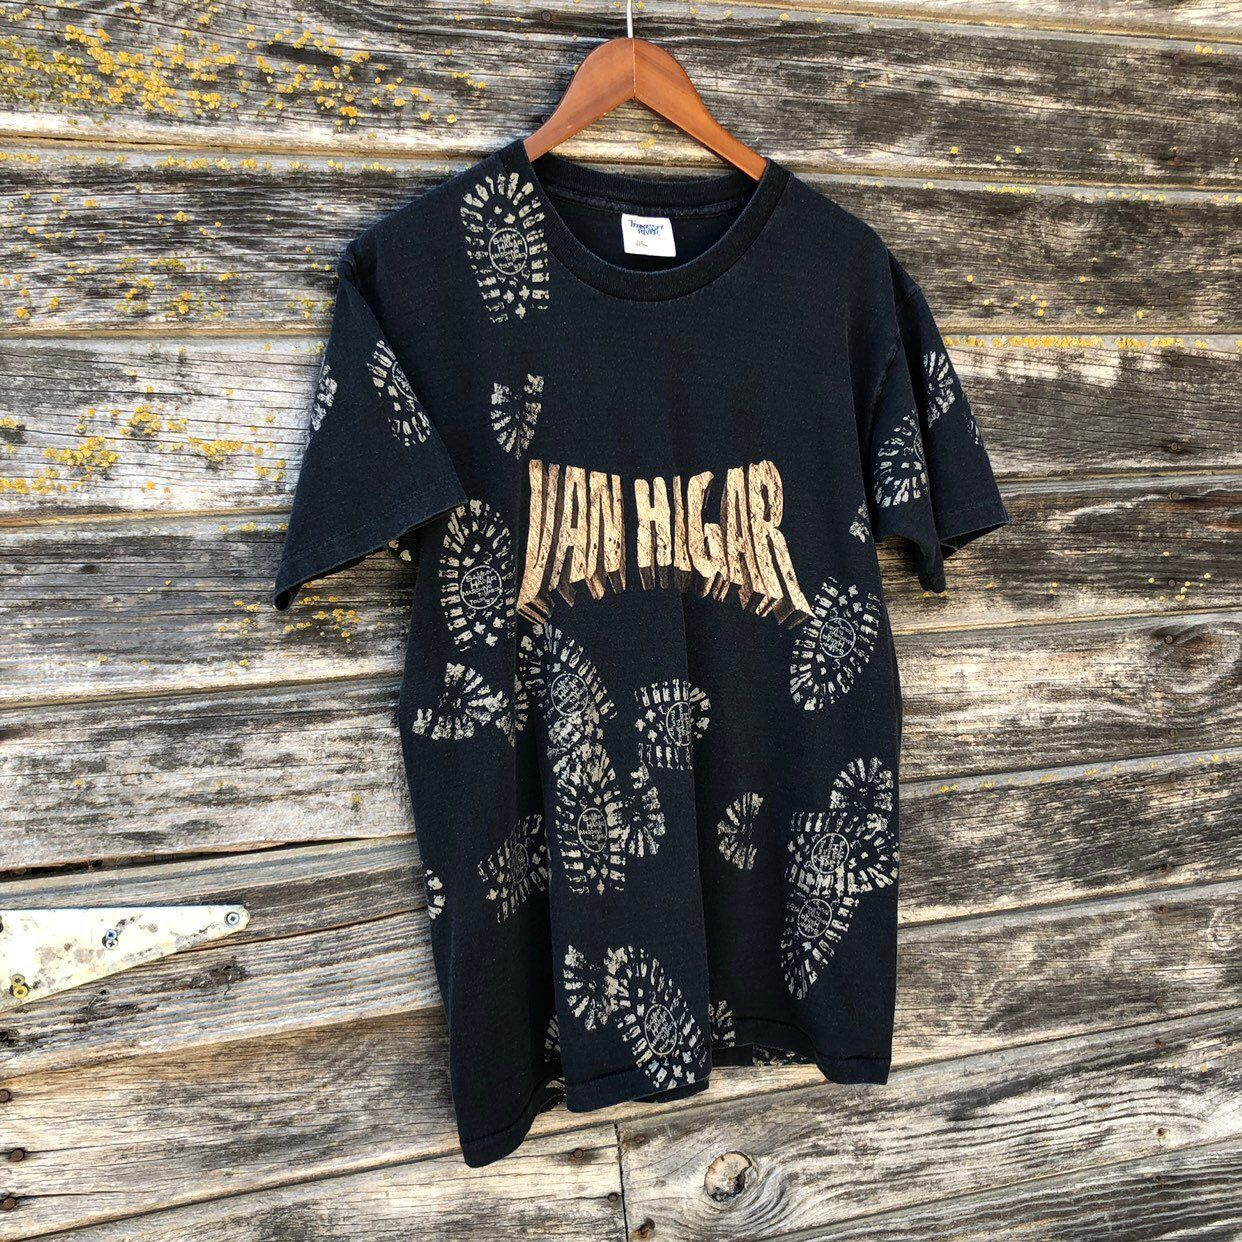 Vintage Van Hagar Concert 1997 Marching To Mars Tour T Shirt Double Graphic Band Tee Black Sammy Hagar Van Rock Shirts Tour T Shirts Vintage Clothing For Sale